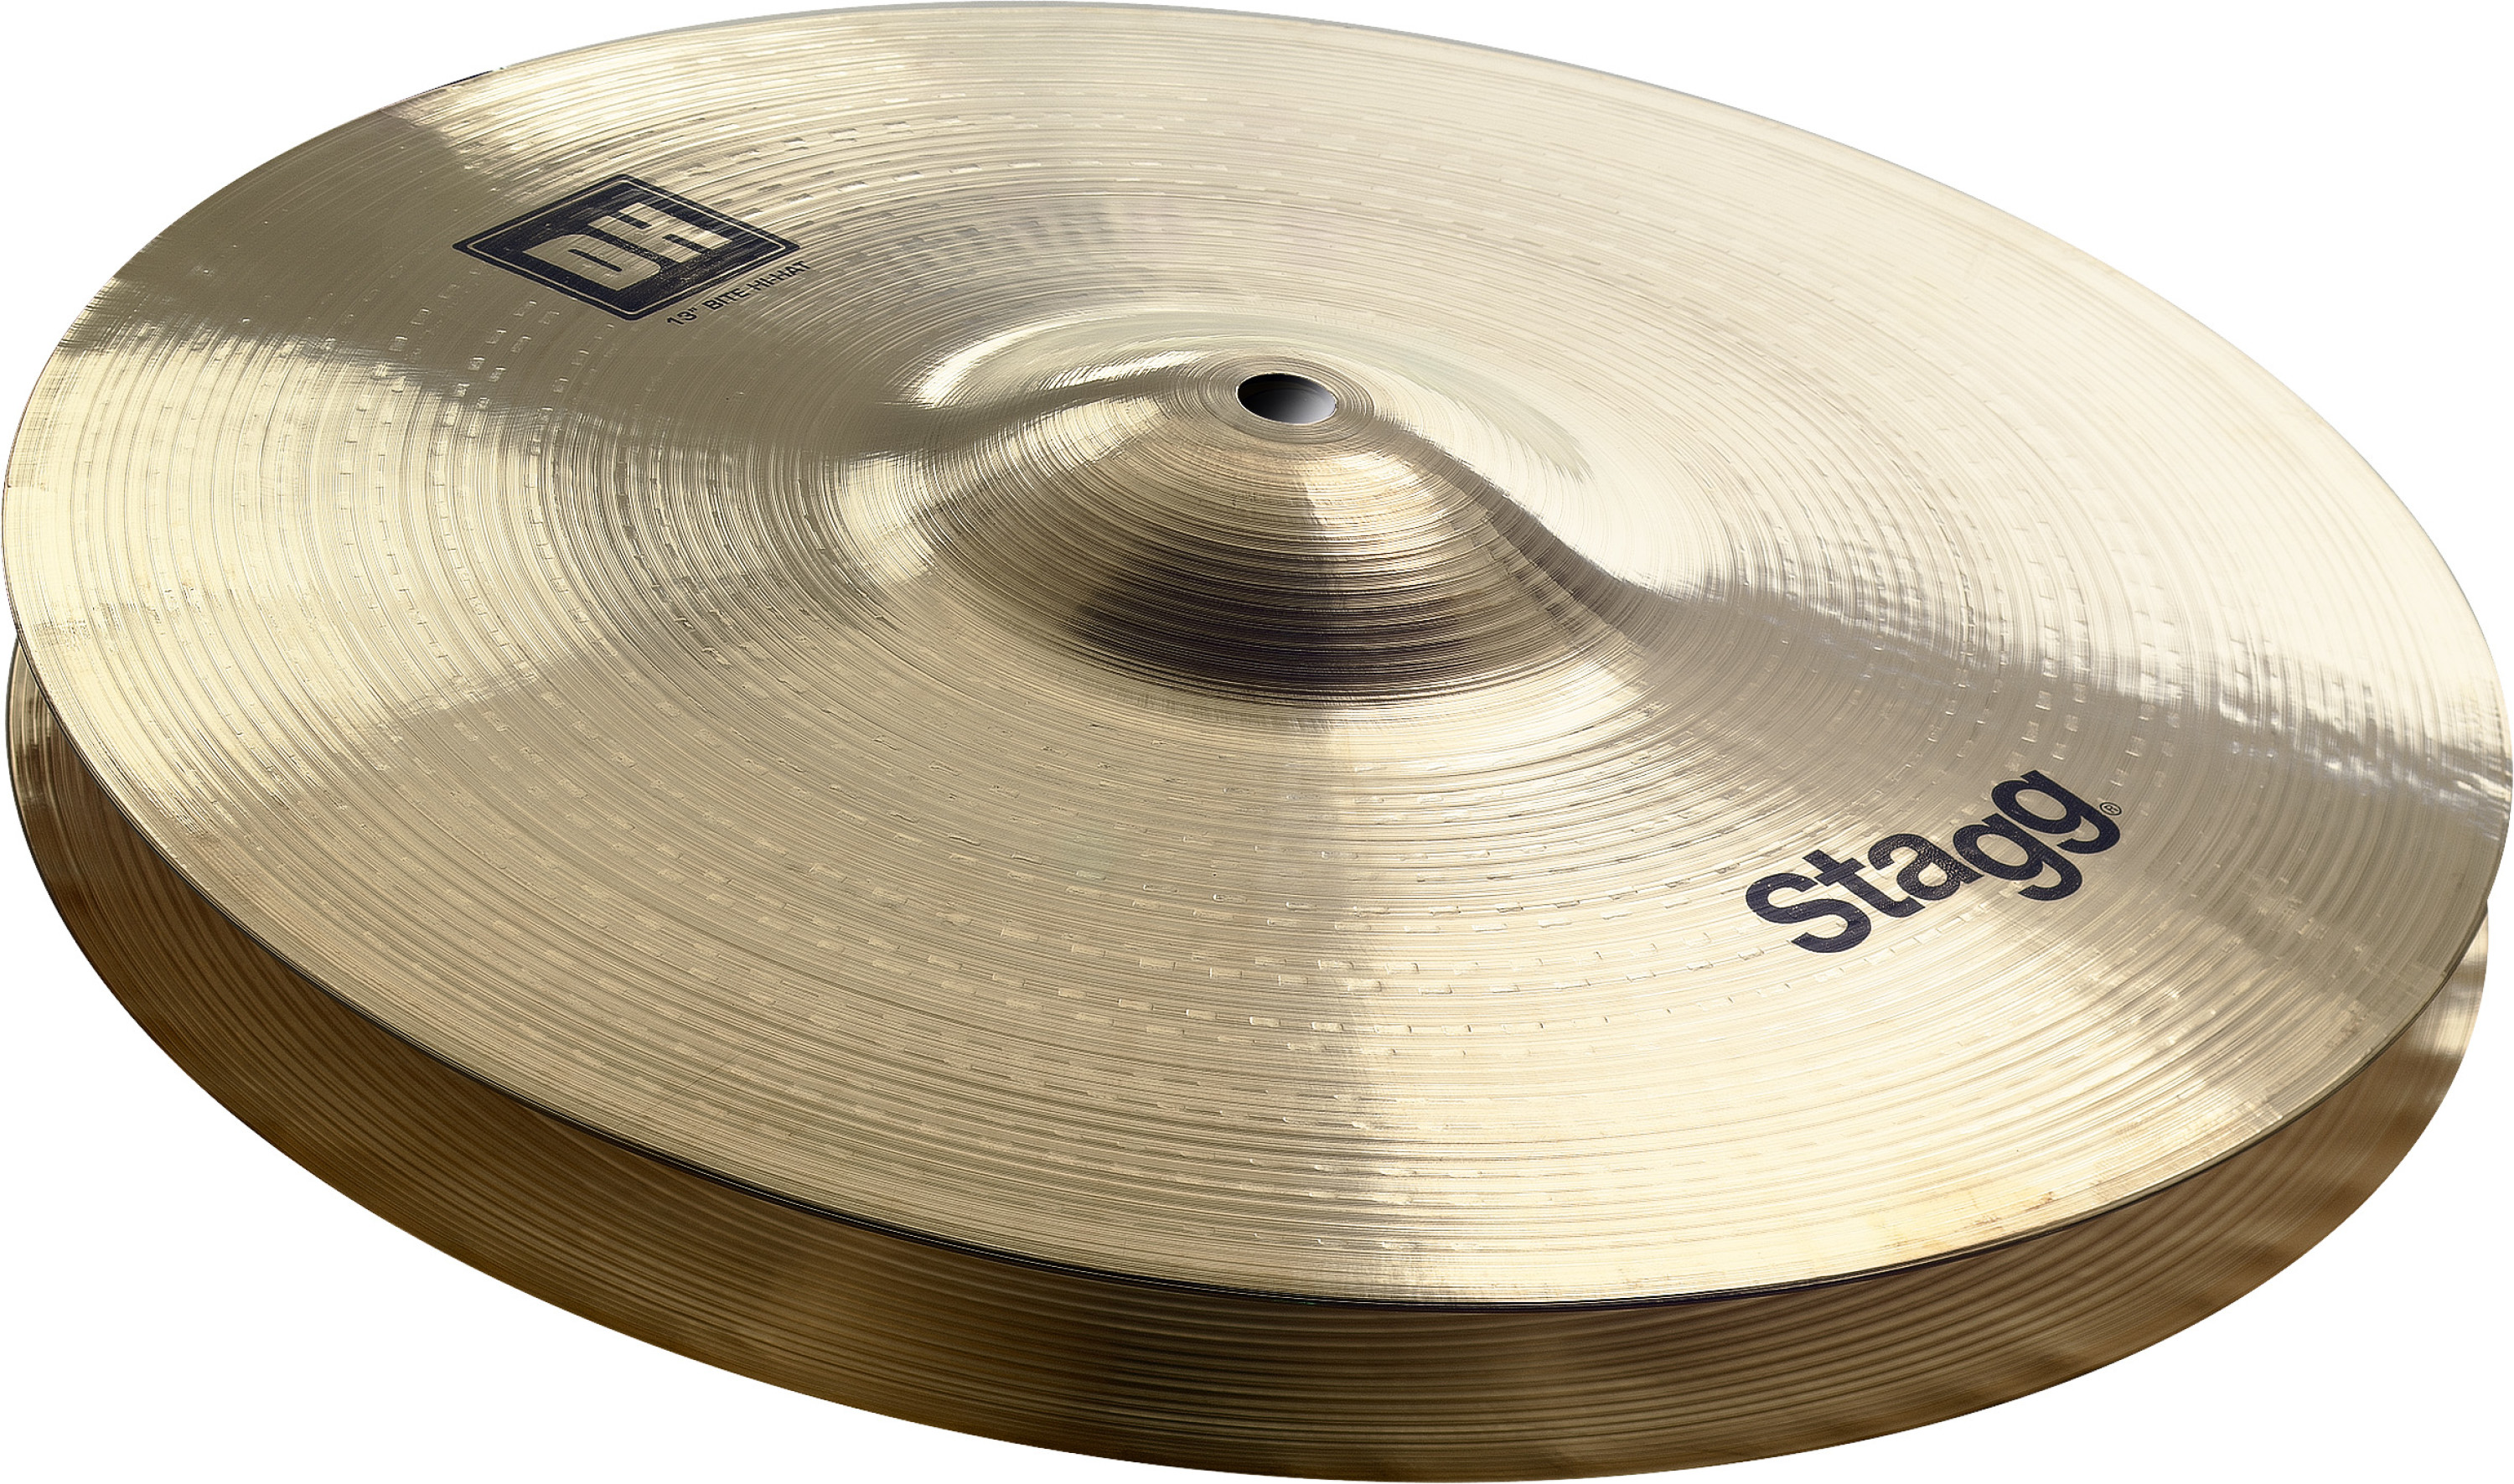 """Stagg 14/"""" DH Double Hammered Medium Hi hat Cymbals DH-HM14B"""